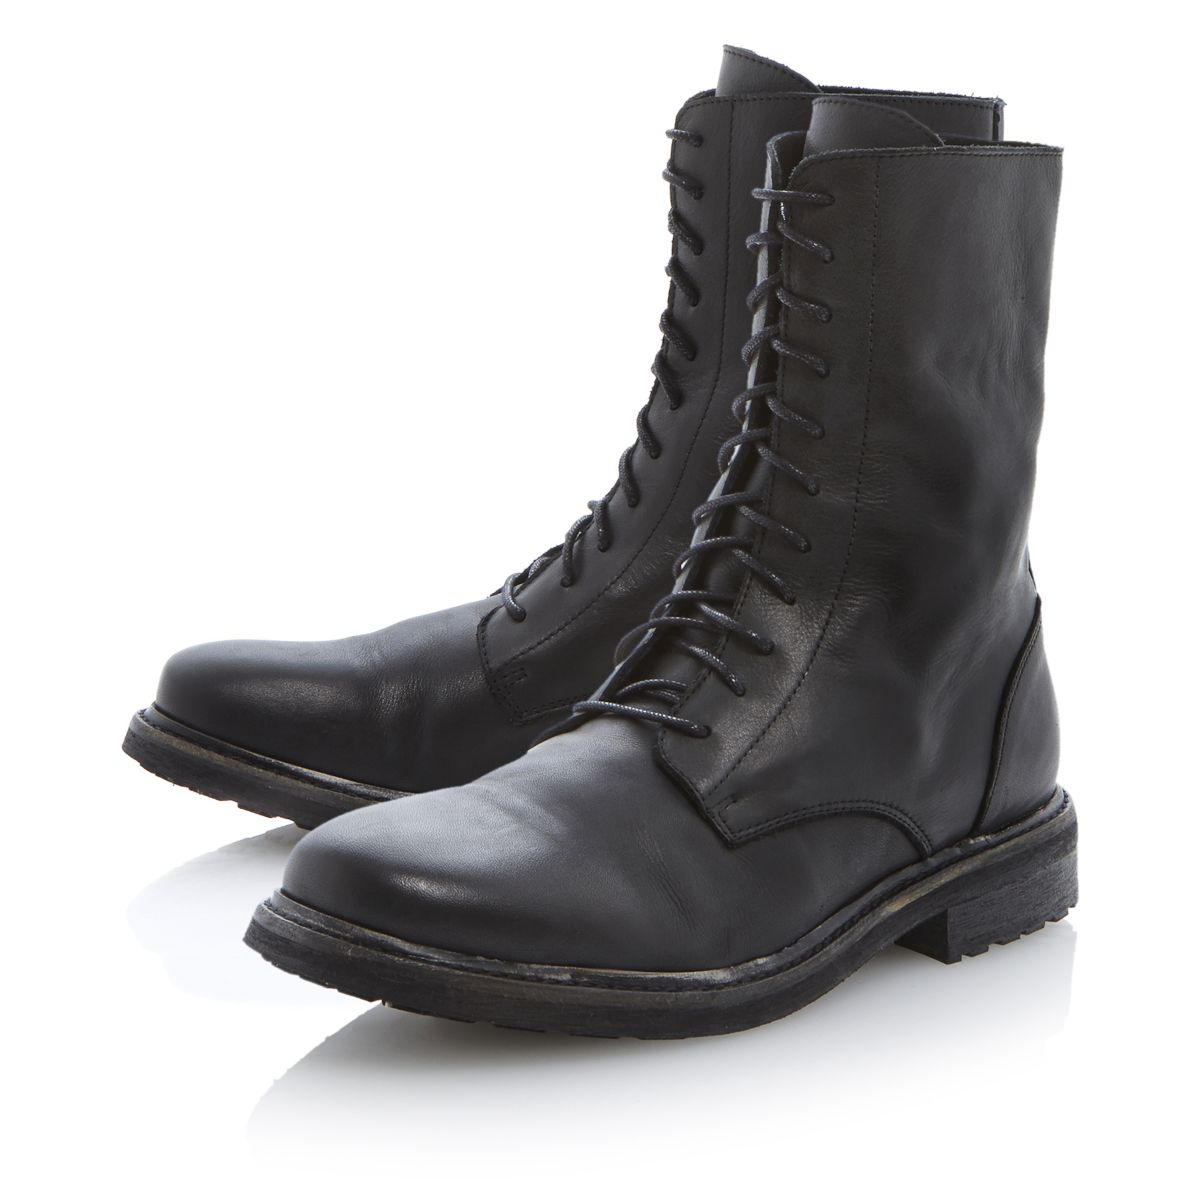 new mens bertie charcoal black leather lace up